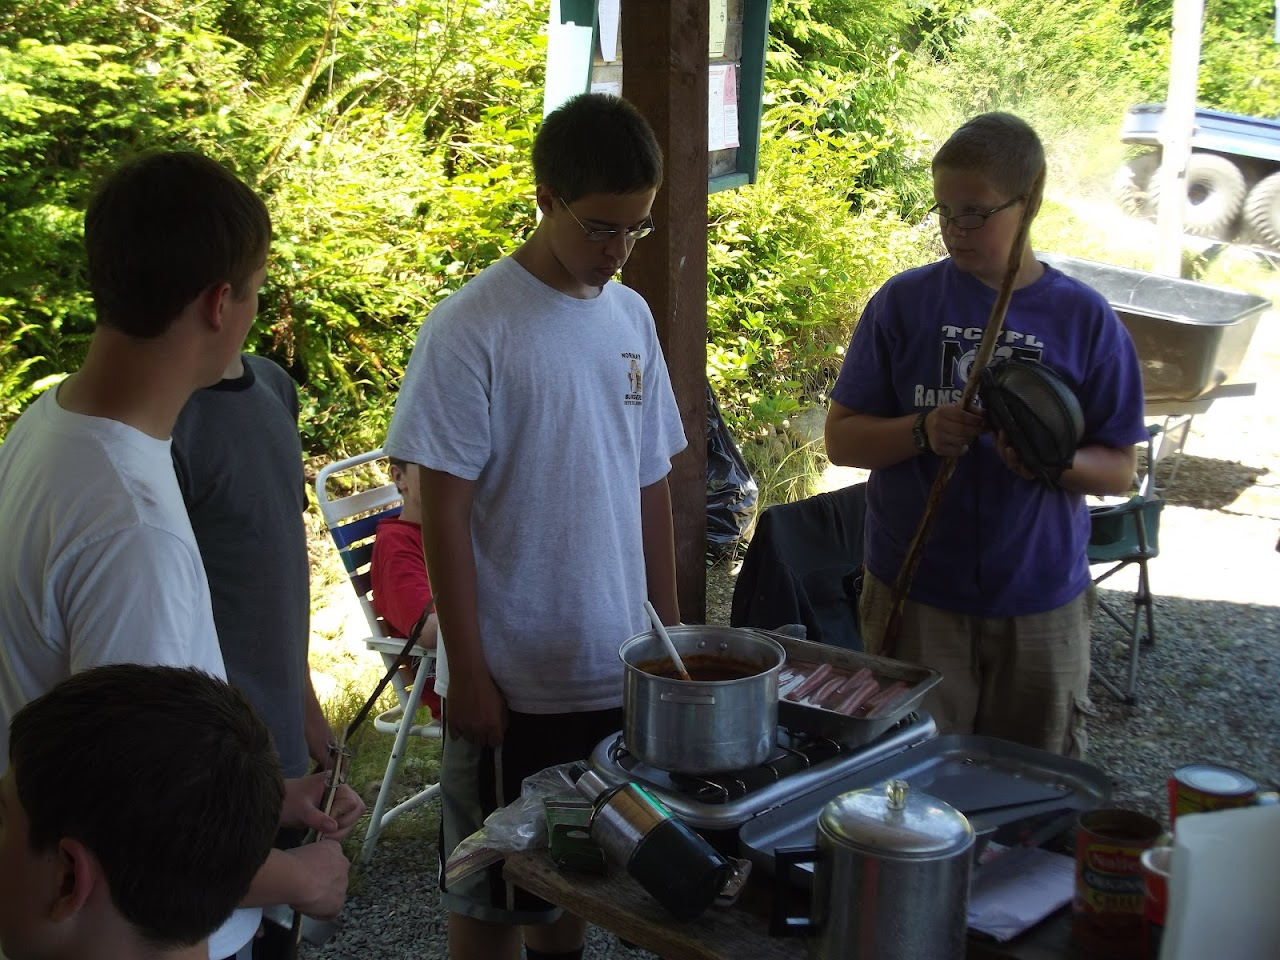 Cooking hotdogs and chili in camp (they were delivered frozen)